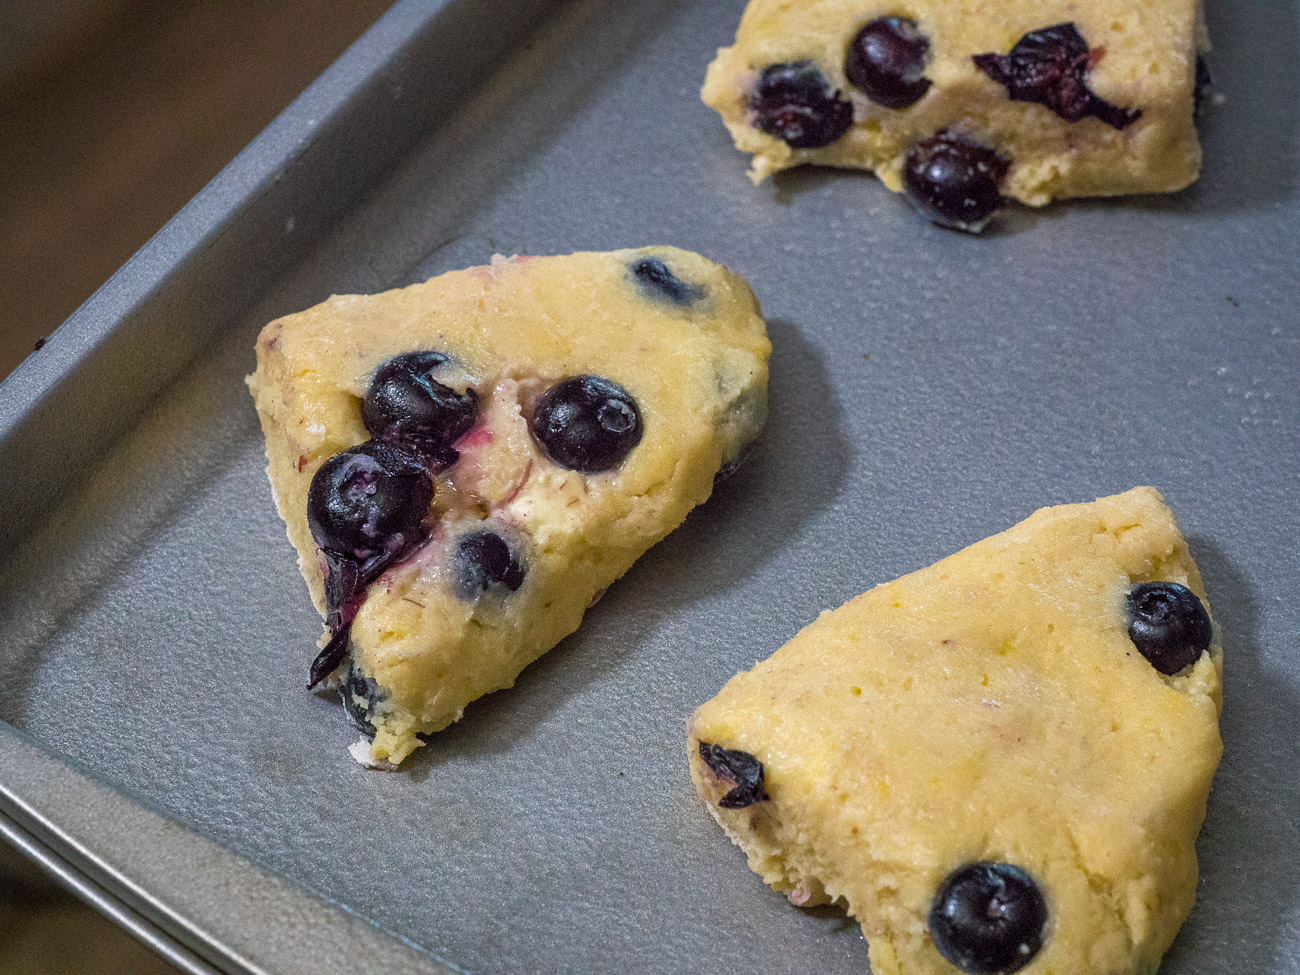 Place scones on greased or lined baking sheet 2-3 inches apart and refrigerate for 15 minutes. Preheat oven to 400˚F.